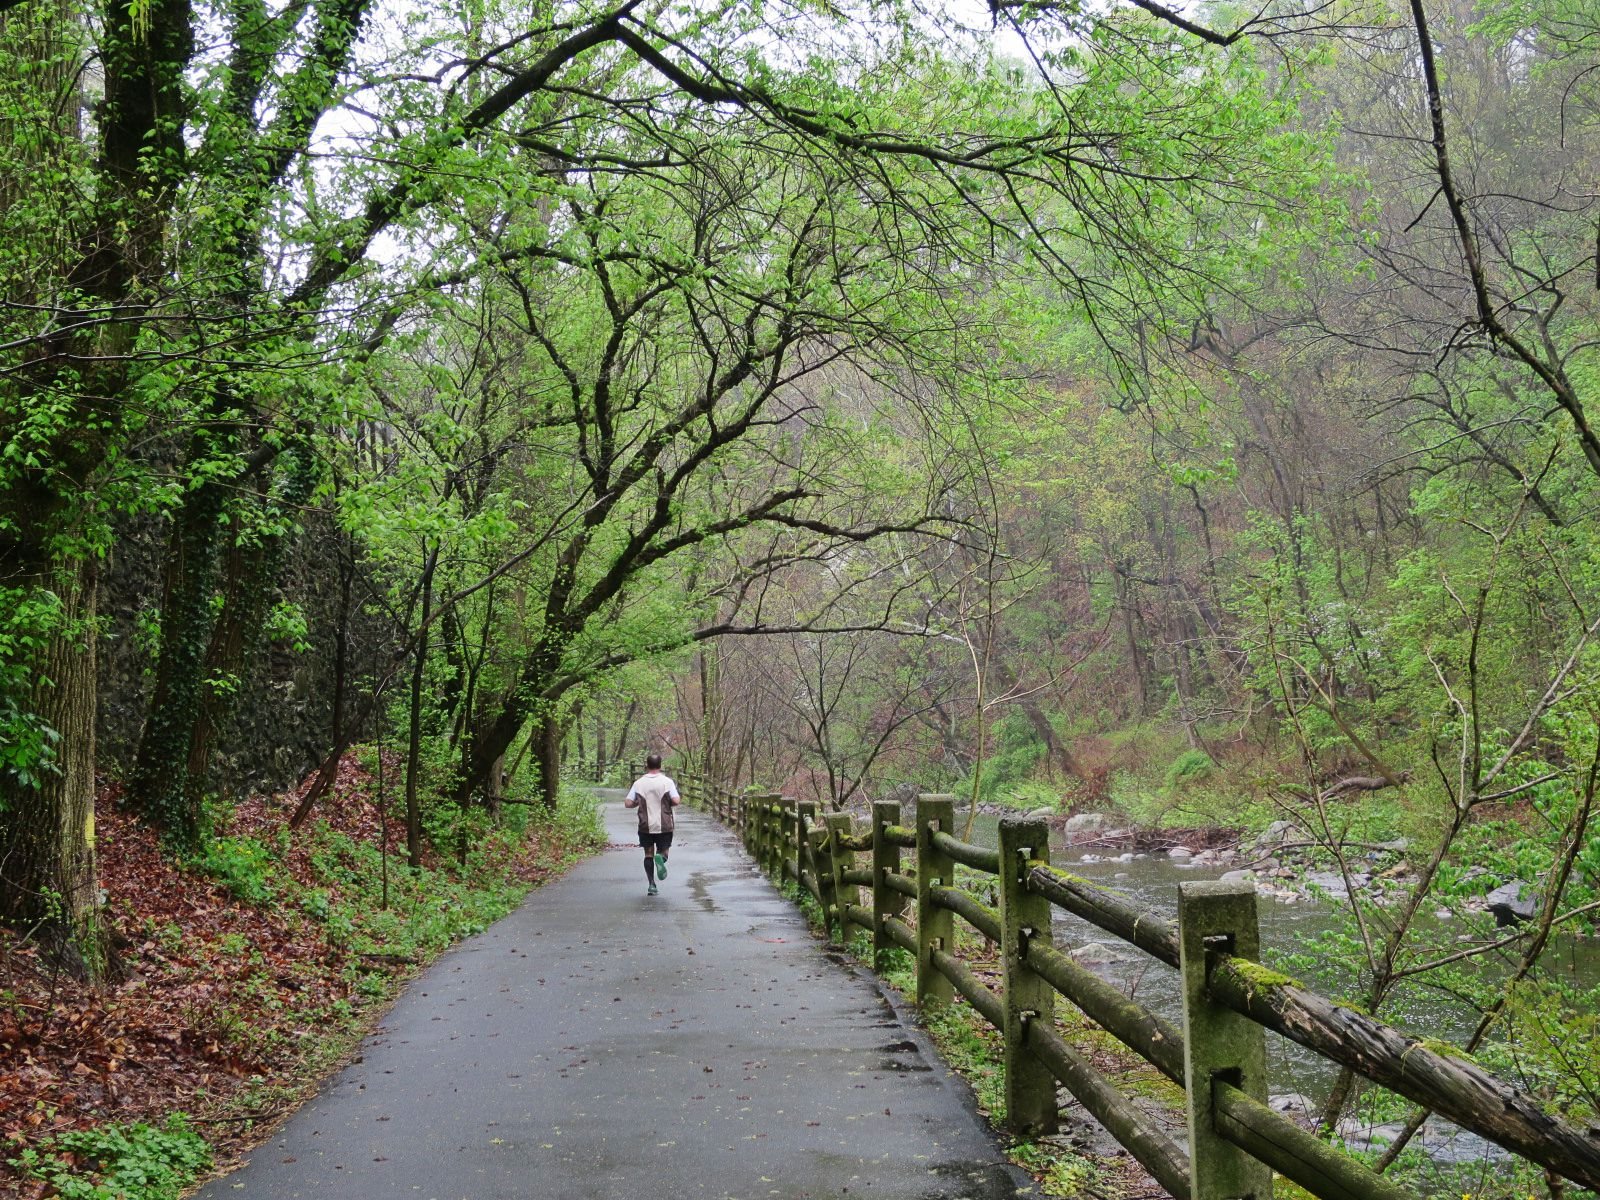 EastFallsLocal 4-23 Wissahickon runner path forest creek